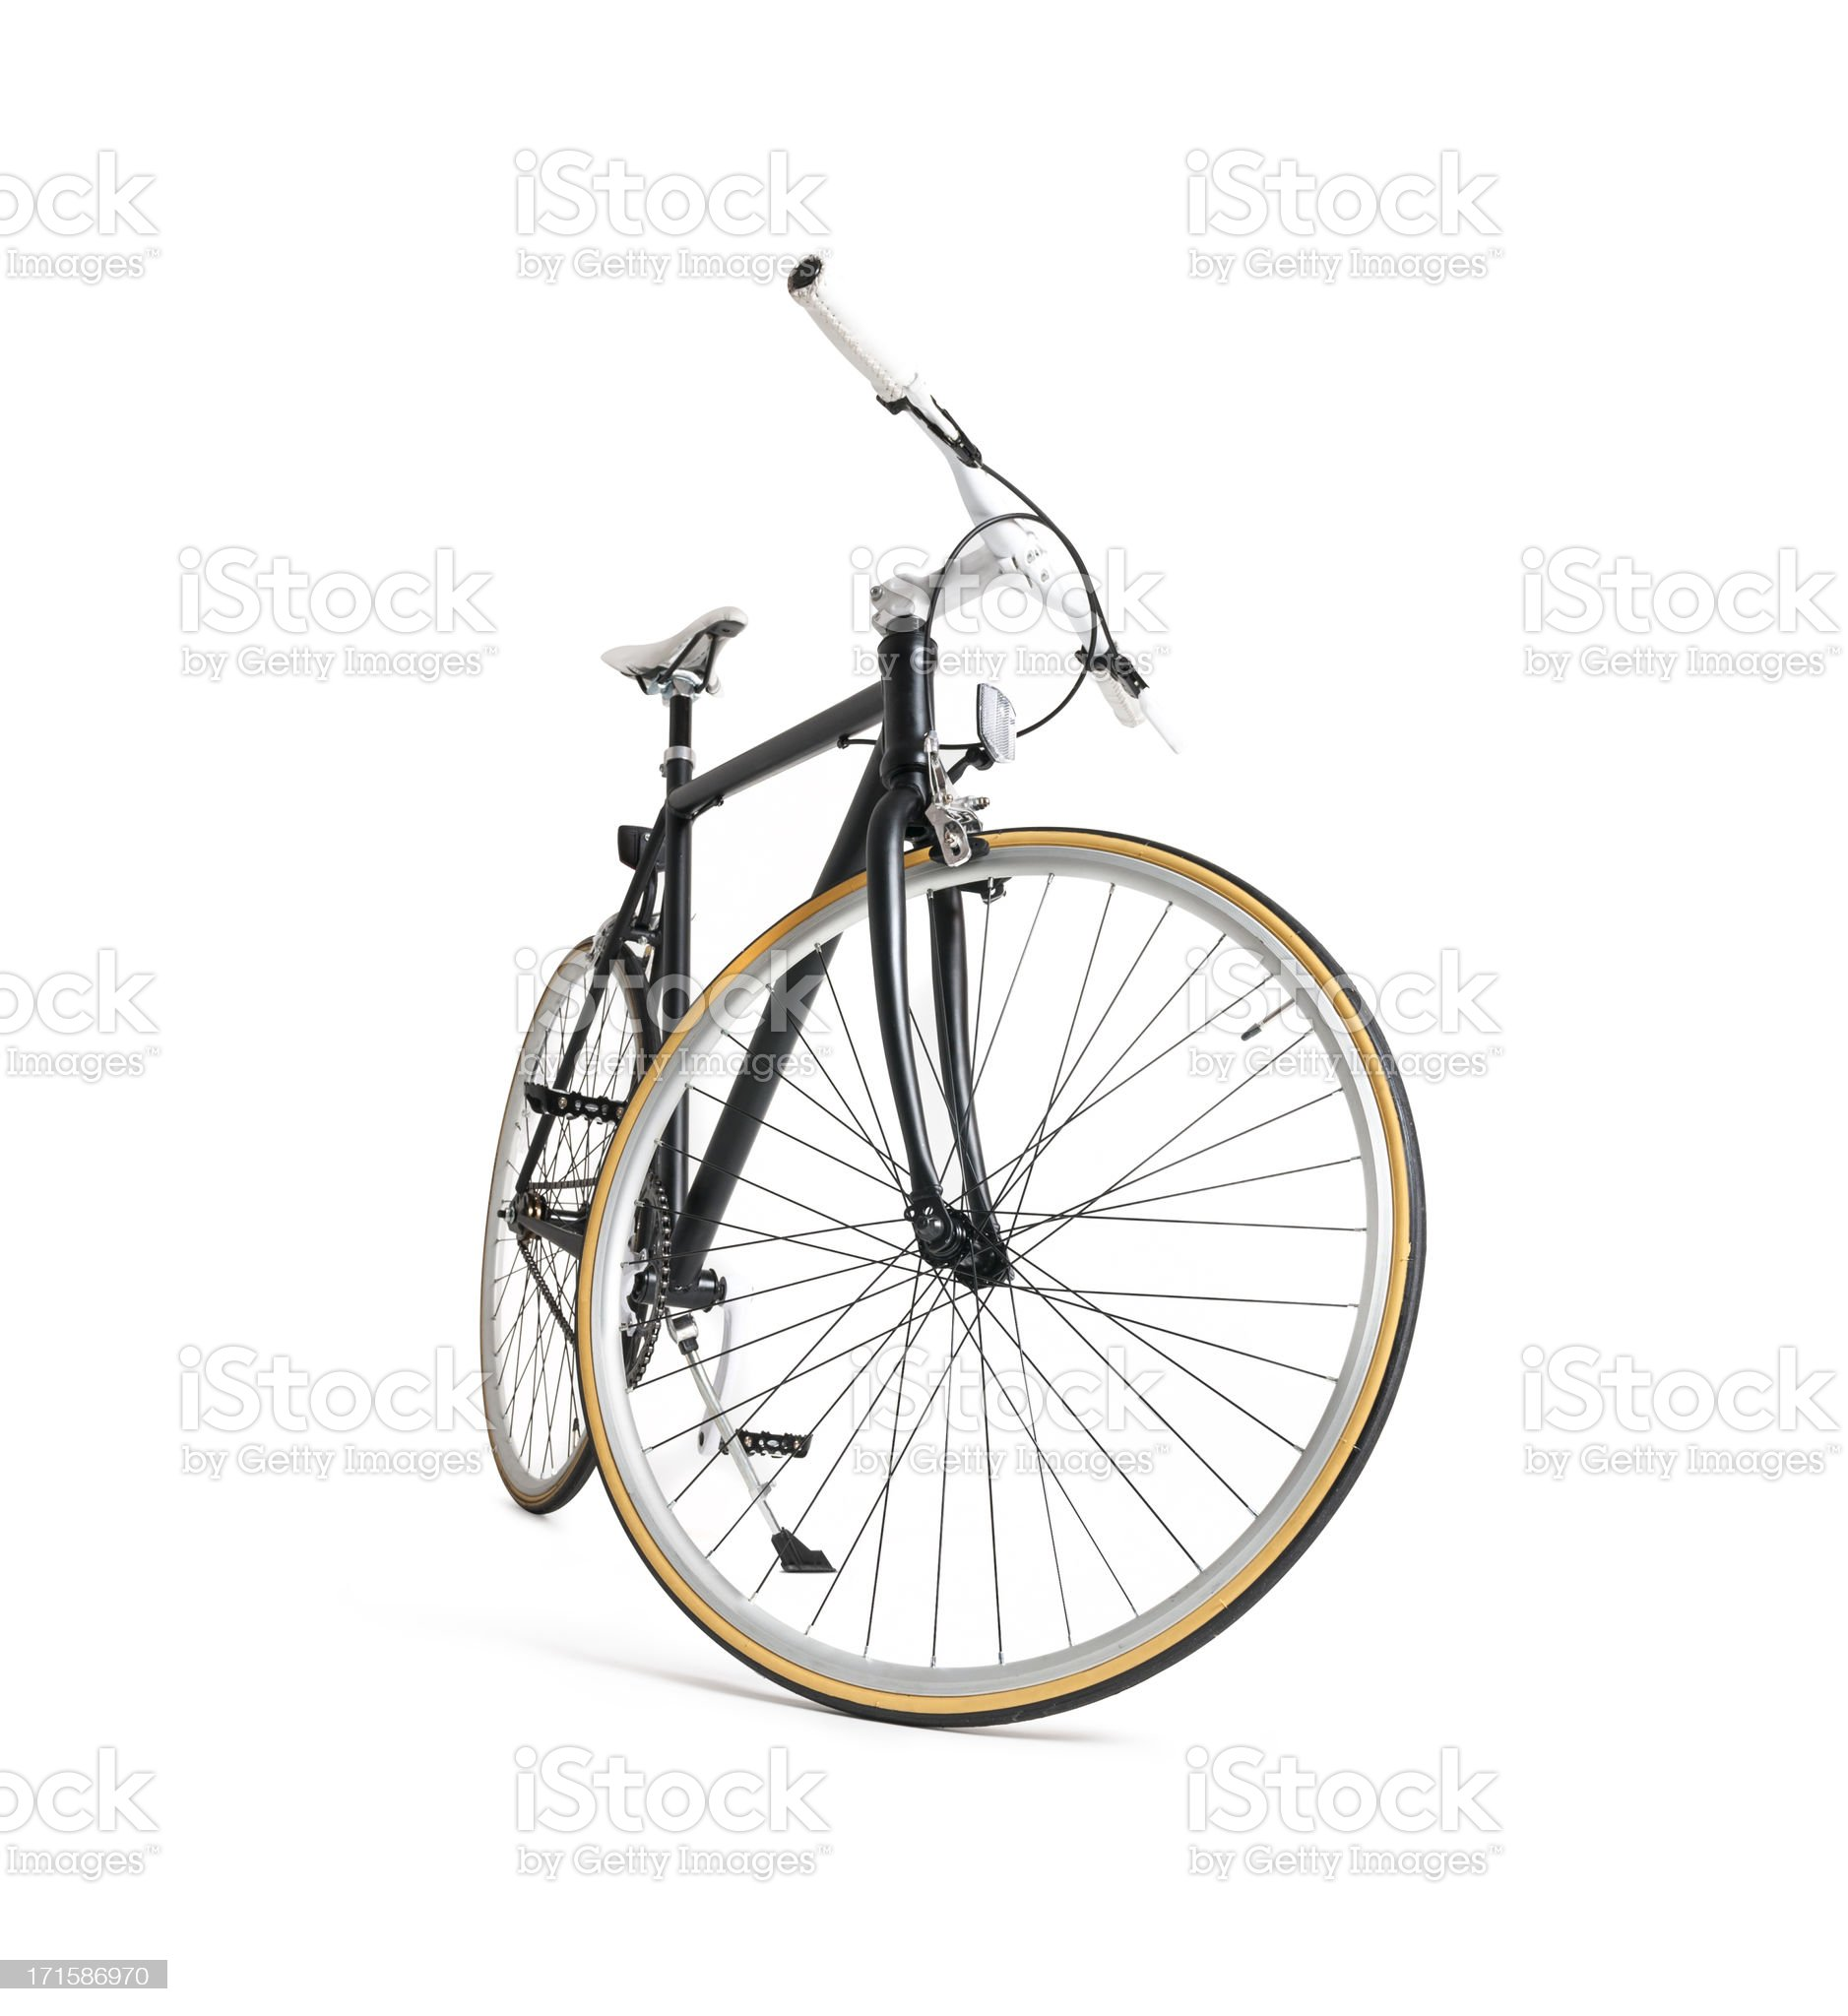 Black Fixie Bicycle Front View royalty-free stock photo